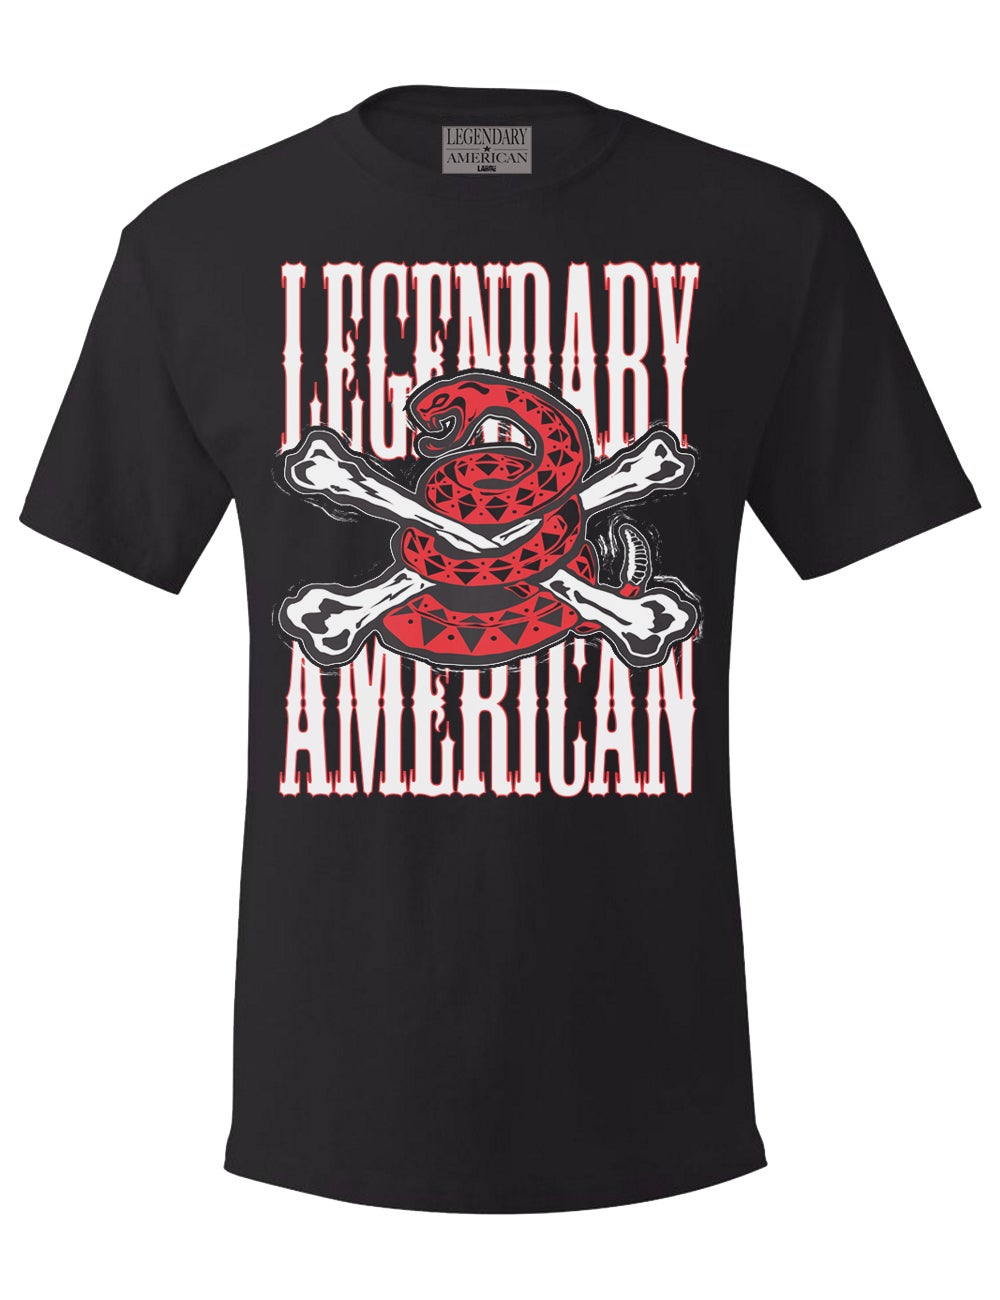 Image of Legendary American Dont Tread 16 tee